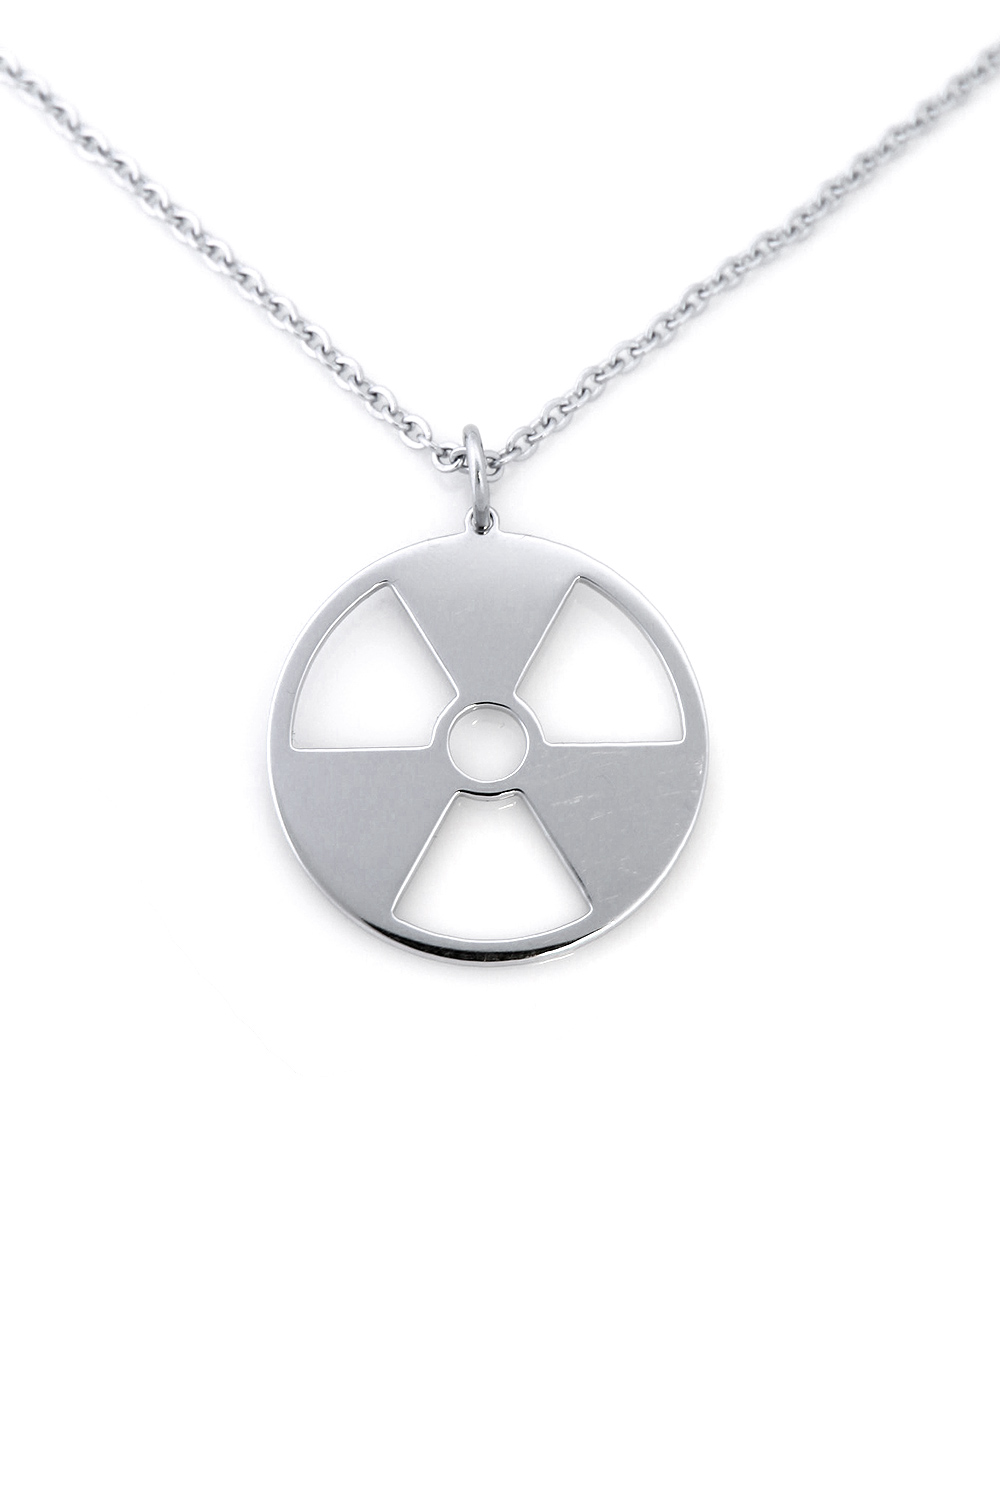 [SYMPHONYOFSYMBOLS] RADIATION HAZARD NECKLACE